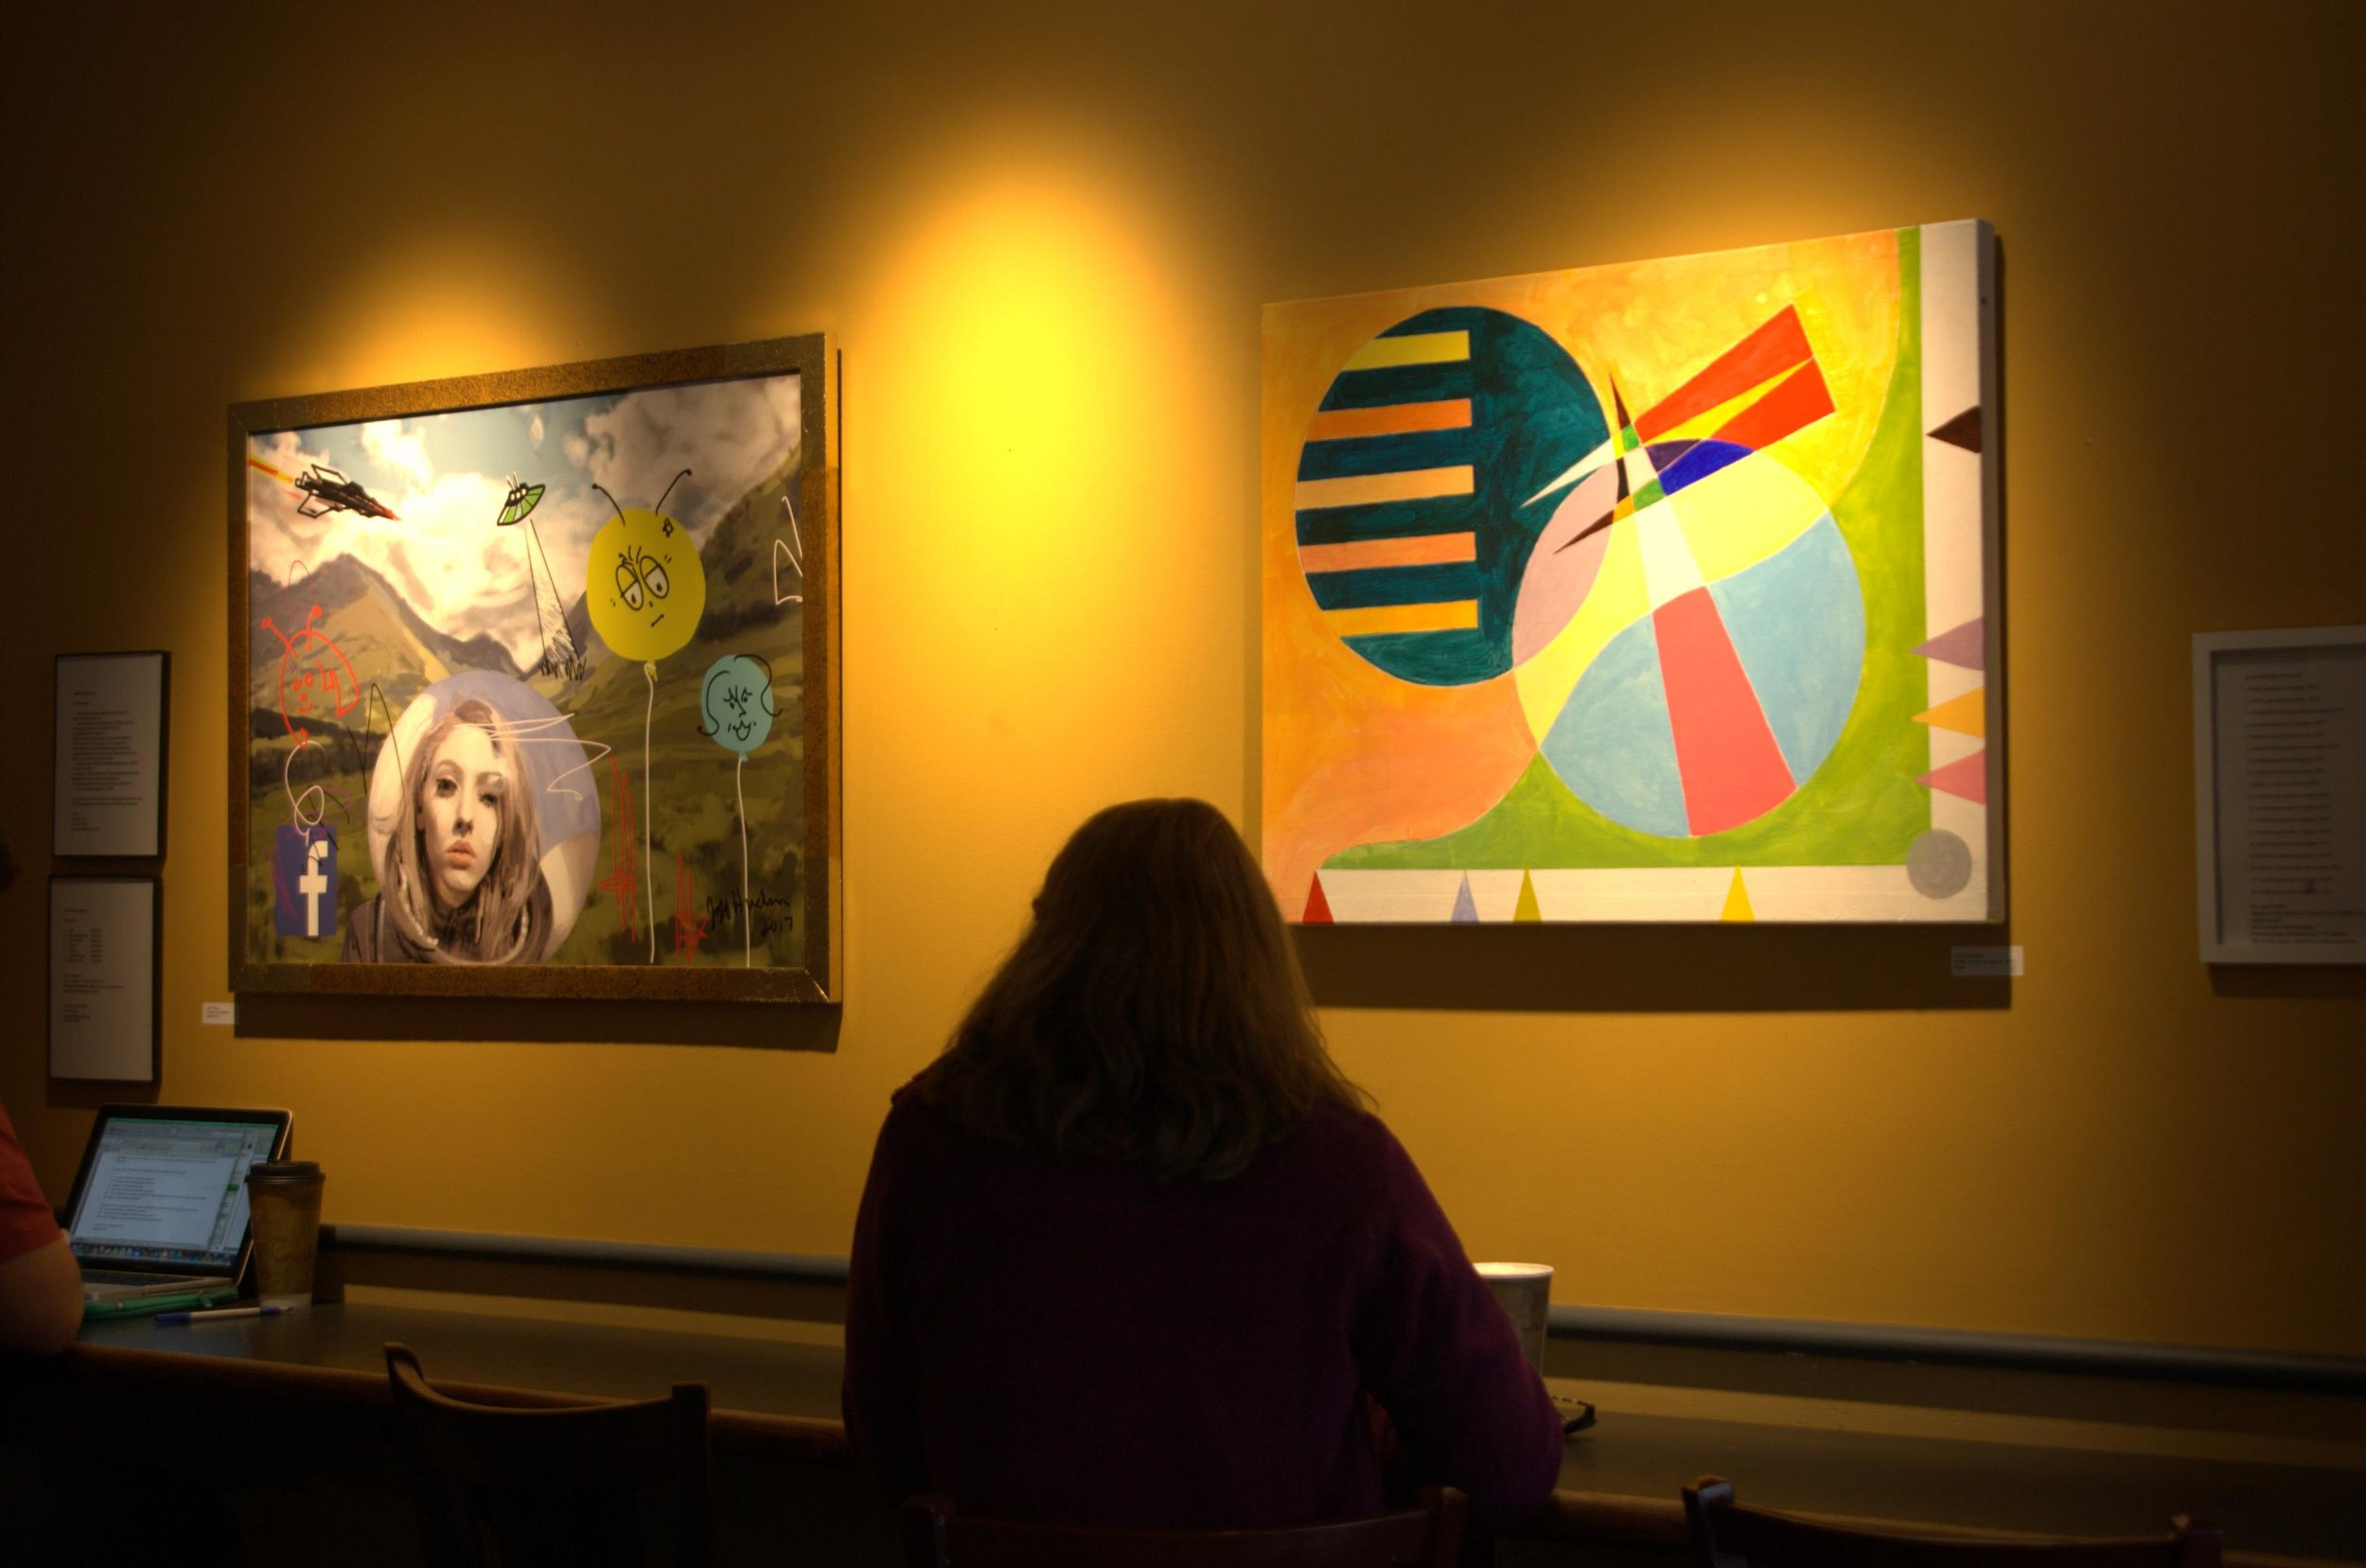 Jeff Hudson's 'Space Girl' painting, left, is displayed at Tunnel City Coffee next to his wife's acrylic painting on canvas titled 'Base.'